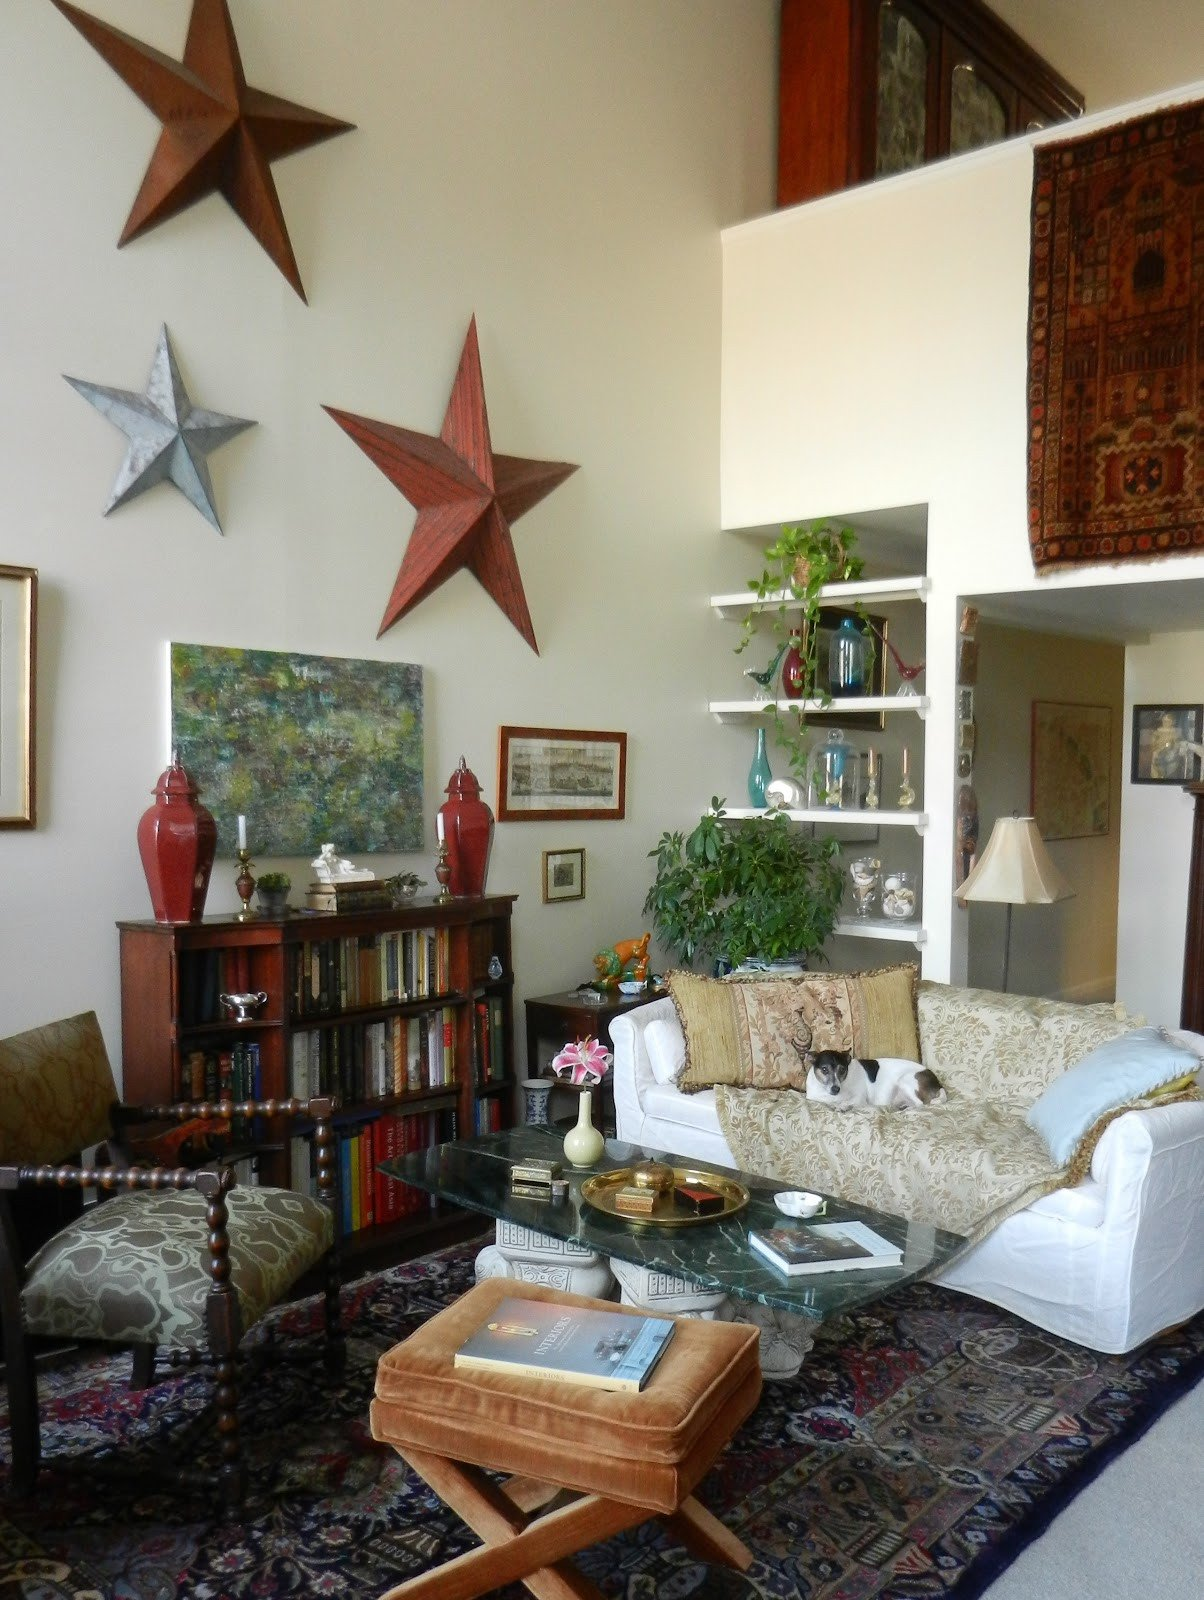 Traditional Eclectic Living Room Awesome Knickerbocker Style & Design Abstract Modern Art In A Traditional Eclectic Room